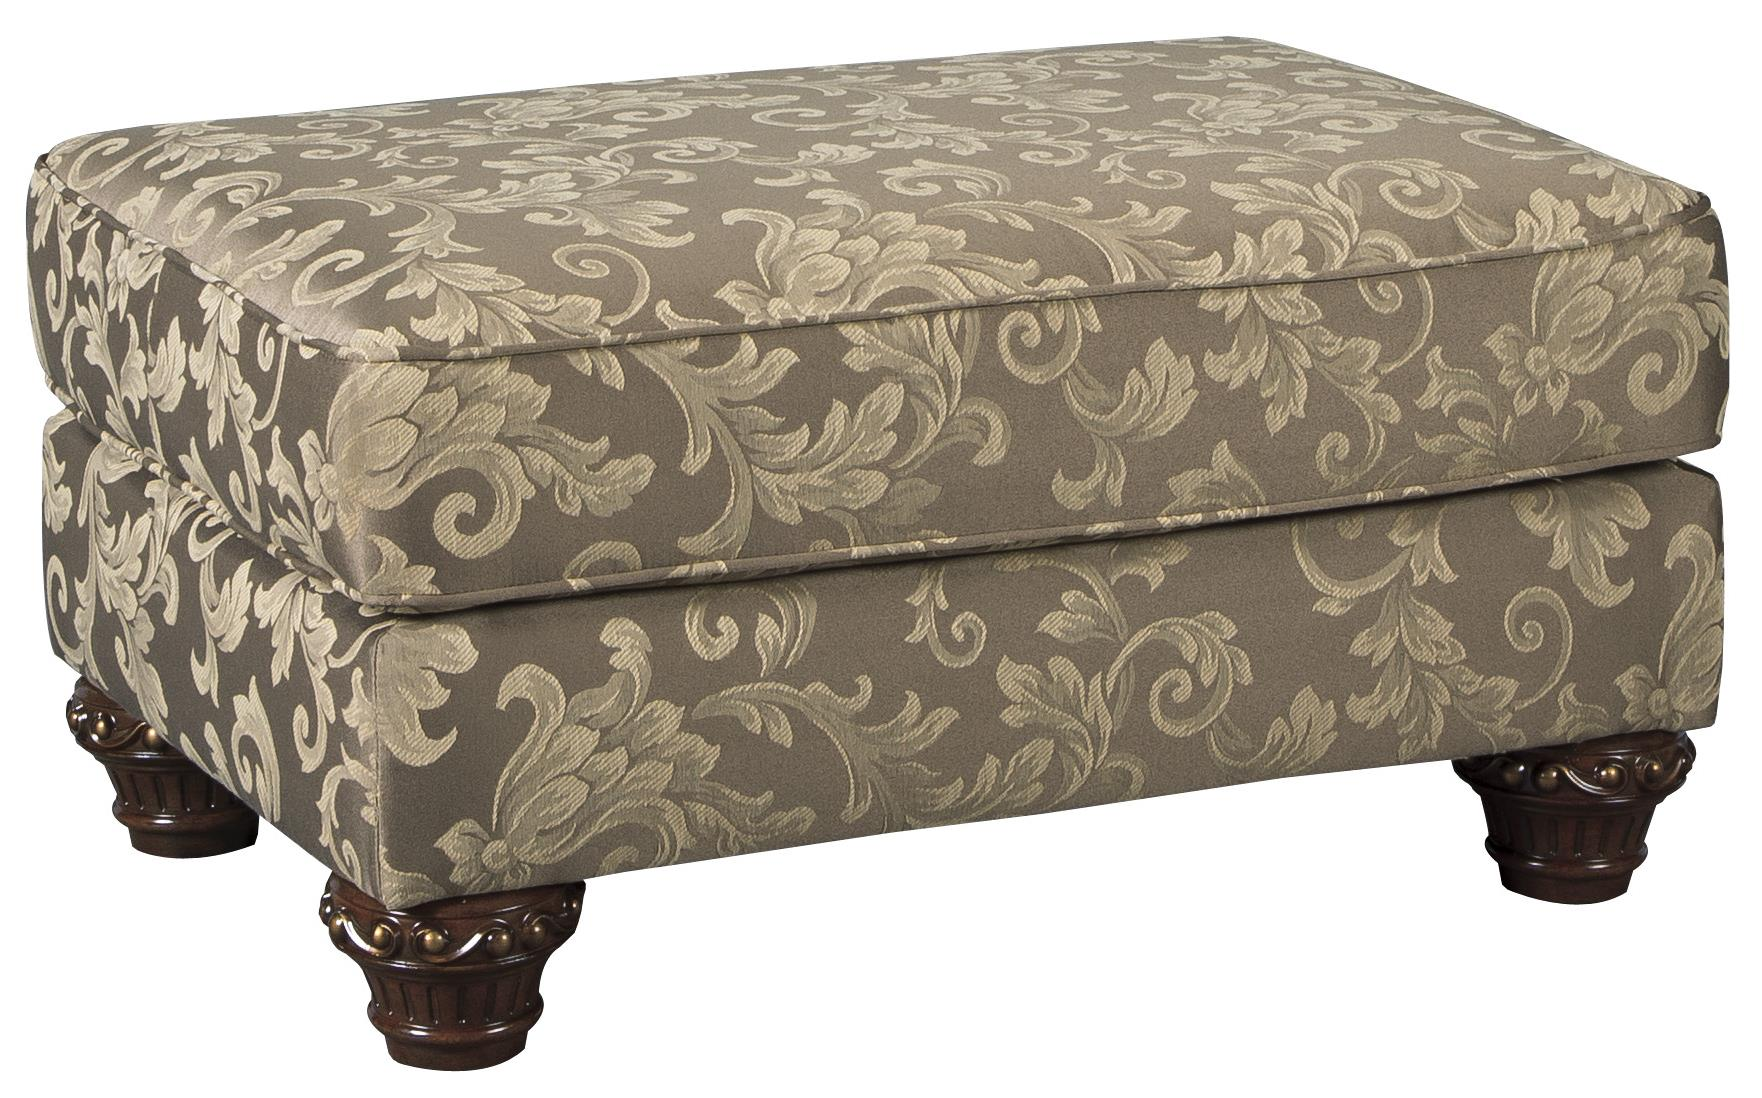 Signature Design by Ashley Irwindale Ottoman - Item Number: 8840414